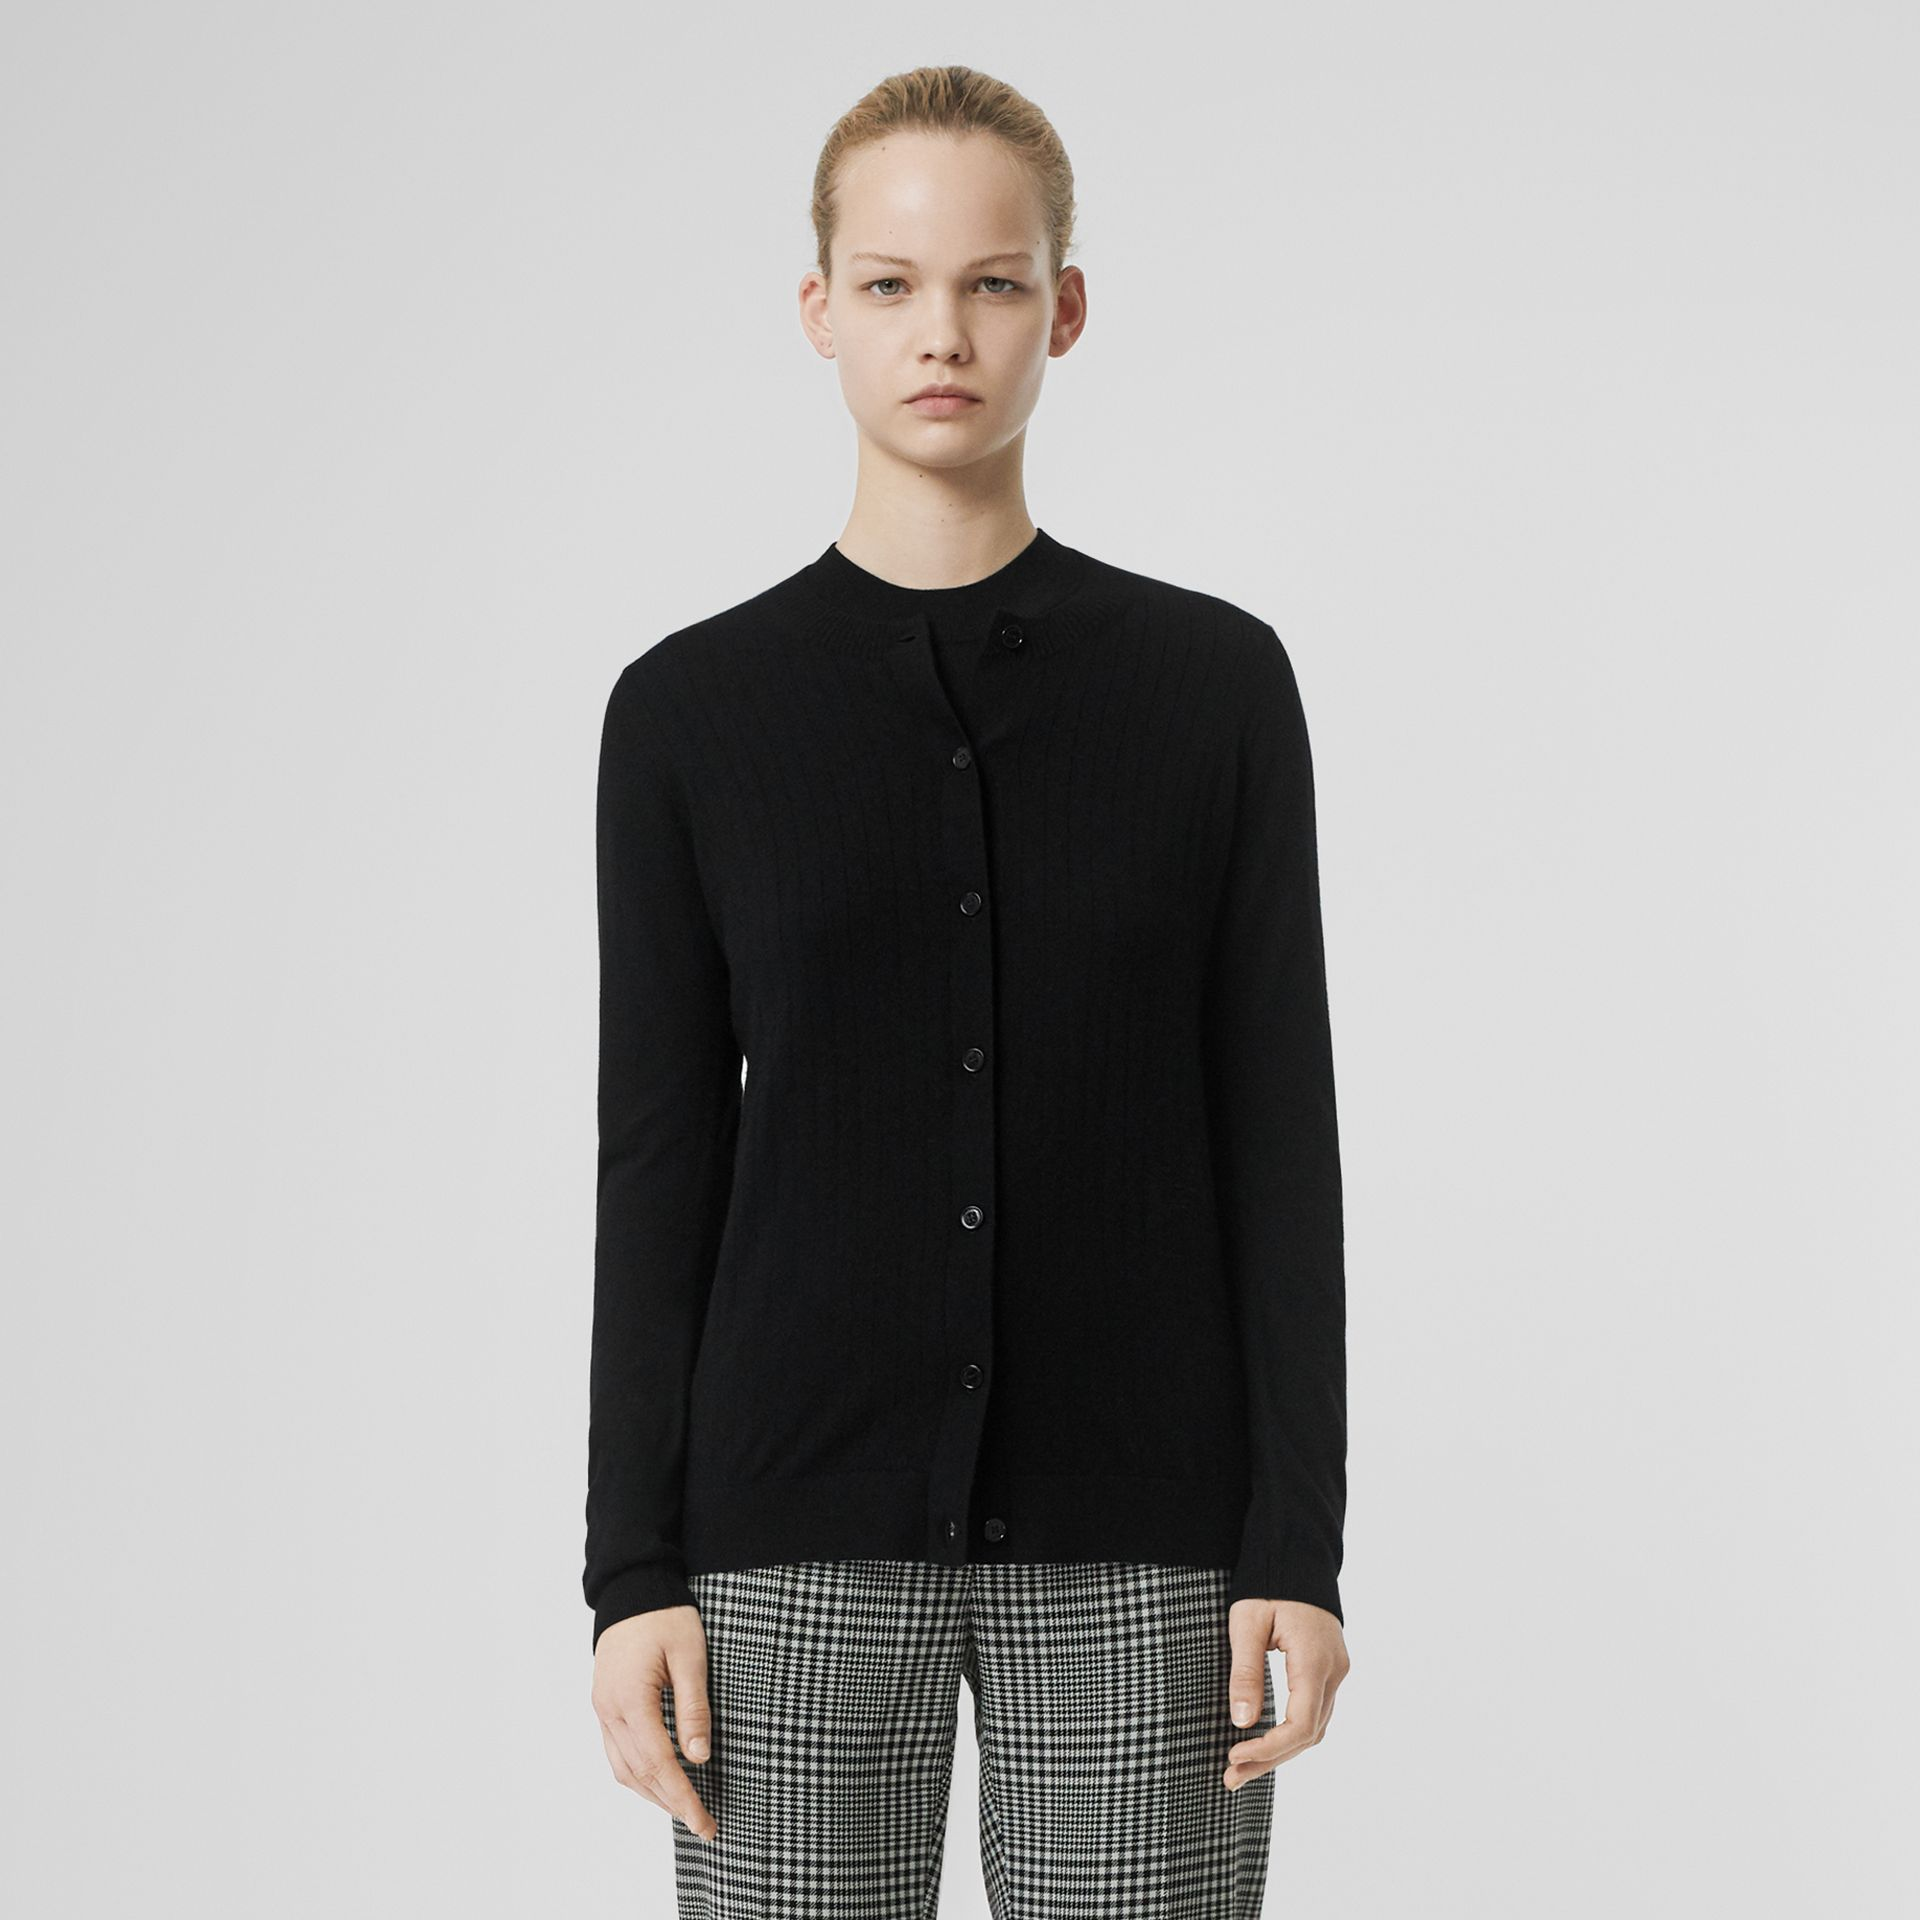 Rib Knit Cashmere Cardigan in Black - Women | Burberry United States - gallery image 6